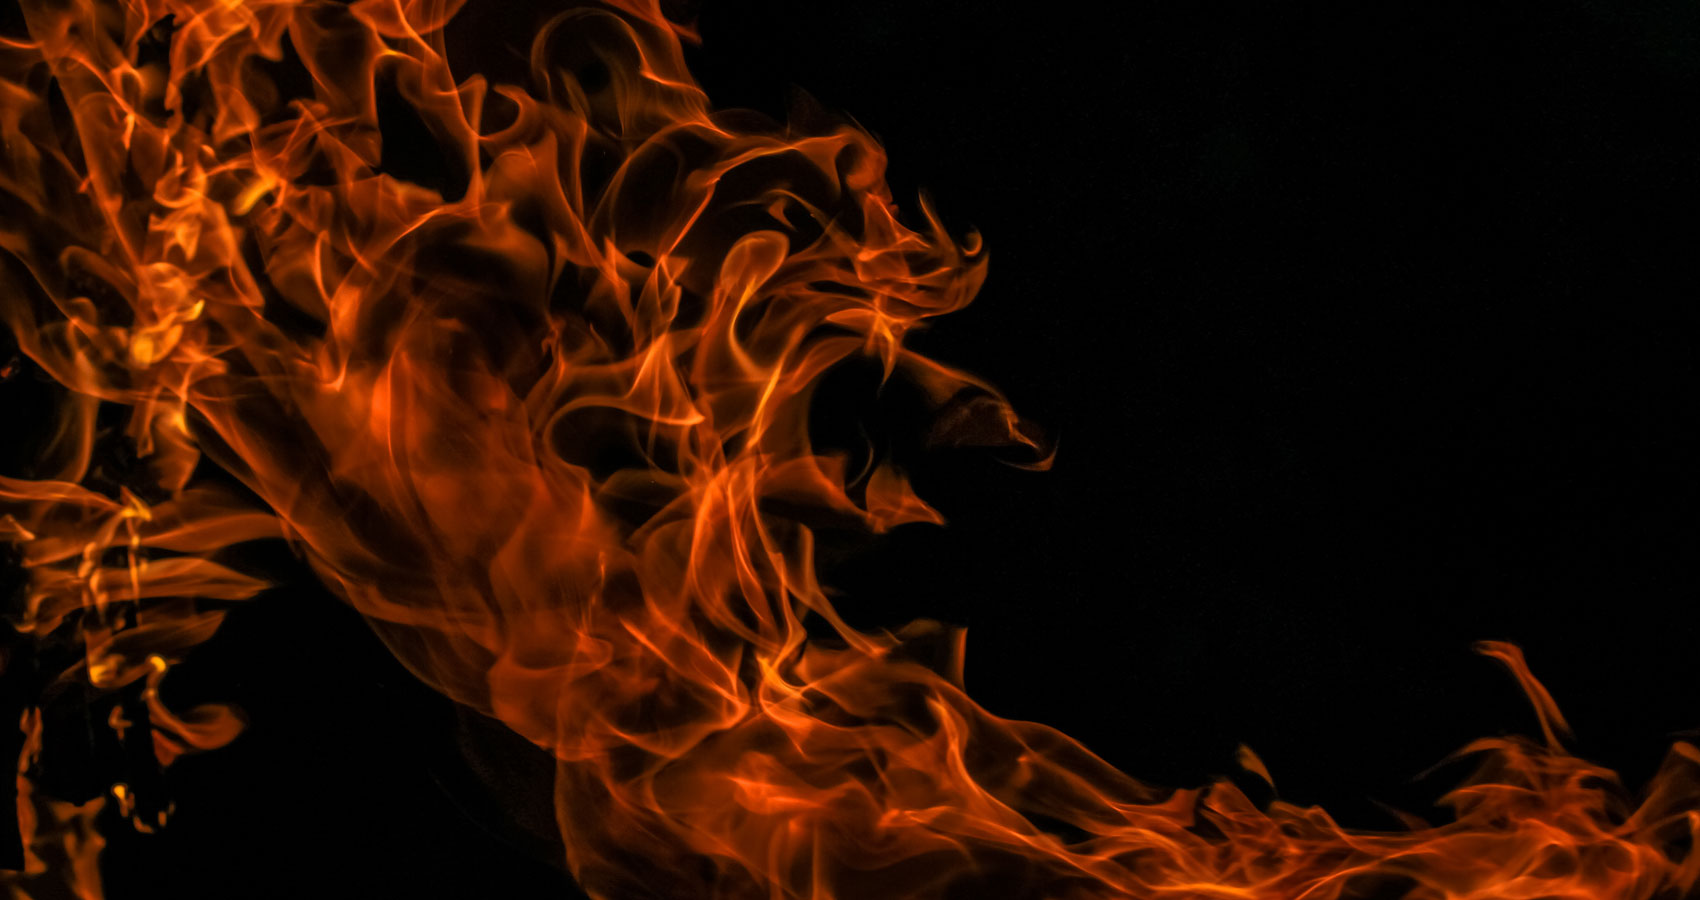 In The Glory Of Fire written by Nivedita Roy at Spillwords.com